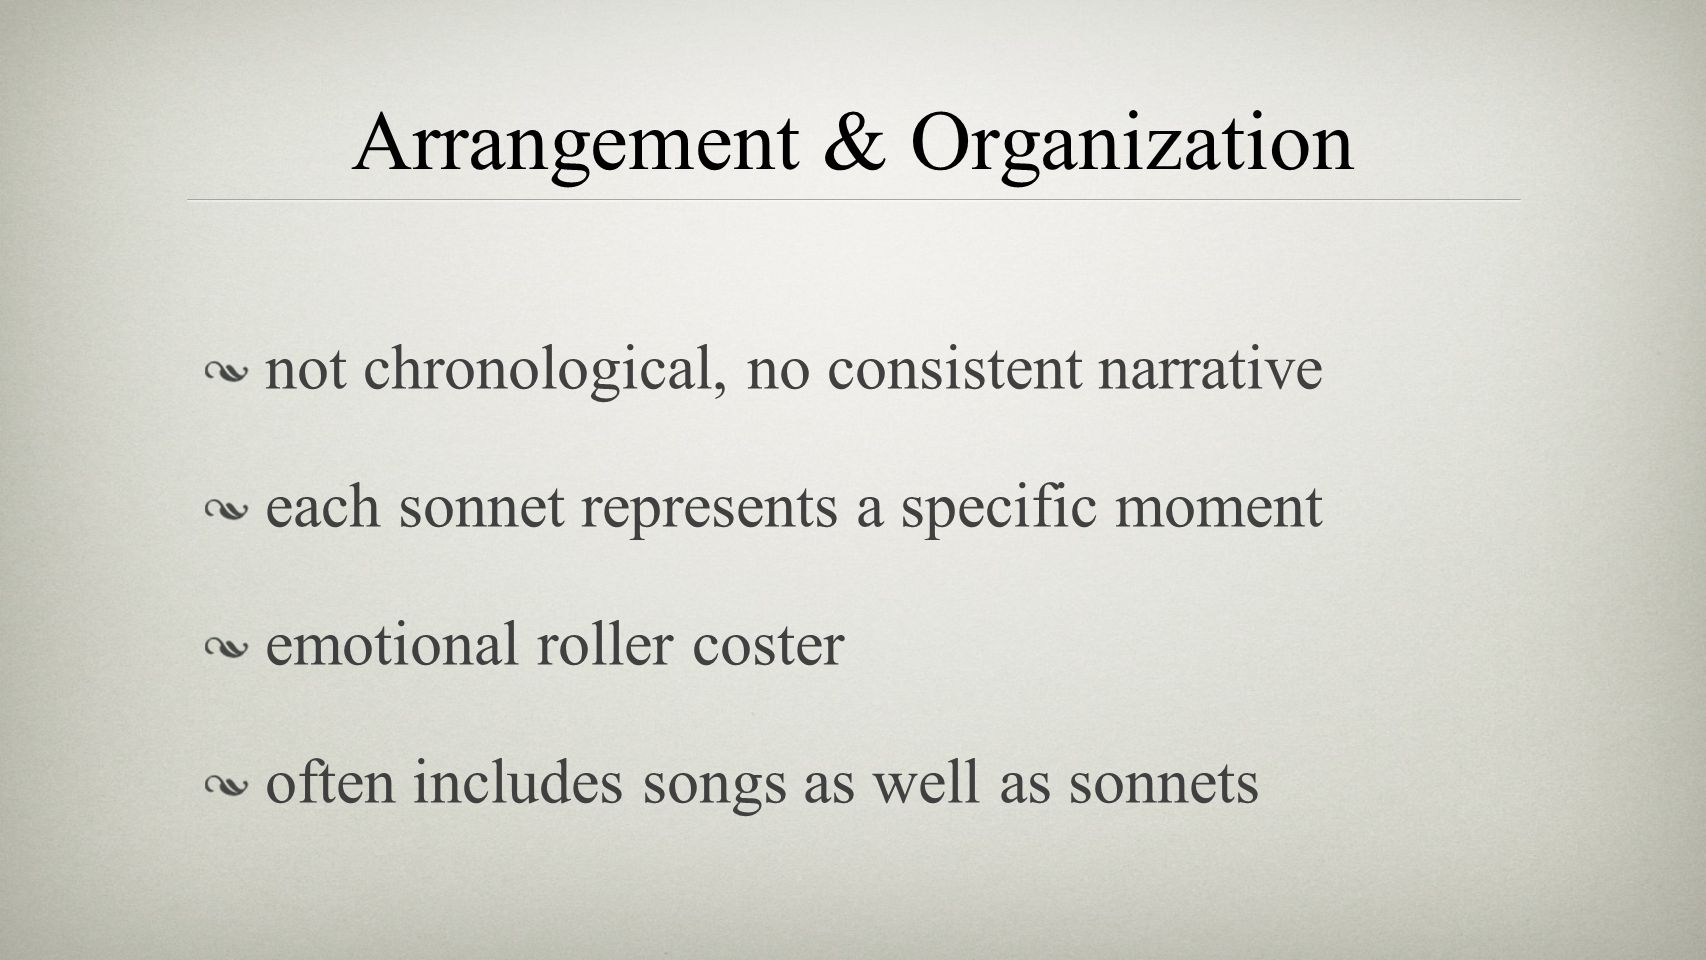 Arrangement & Organization not chronological, no consistent narrative each sonnet represents a specific moment emotional roller coster often includes